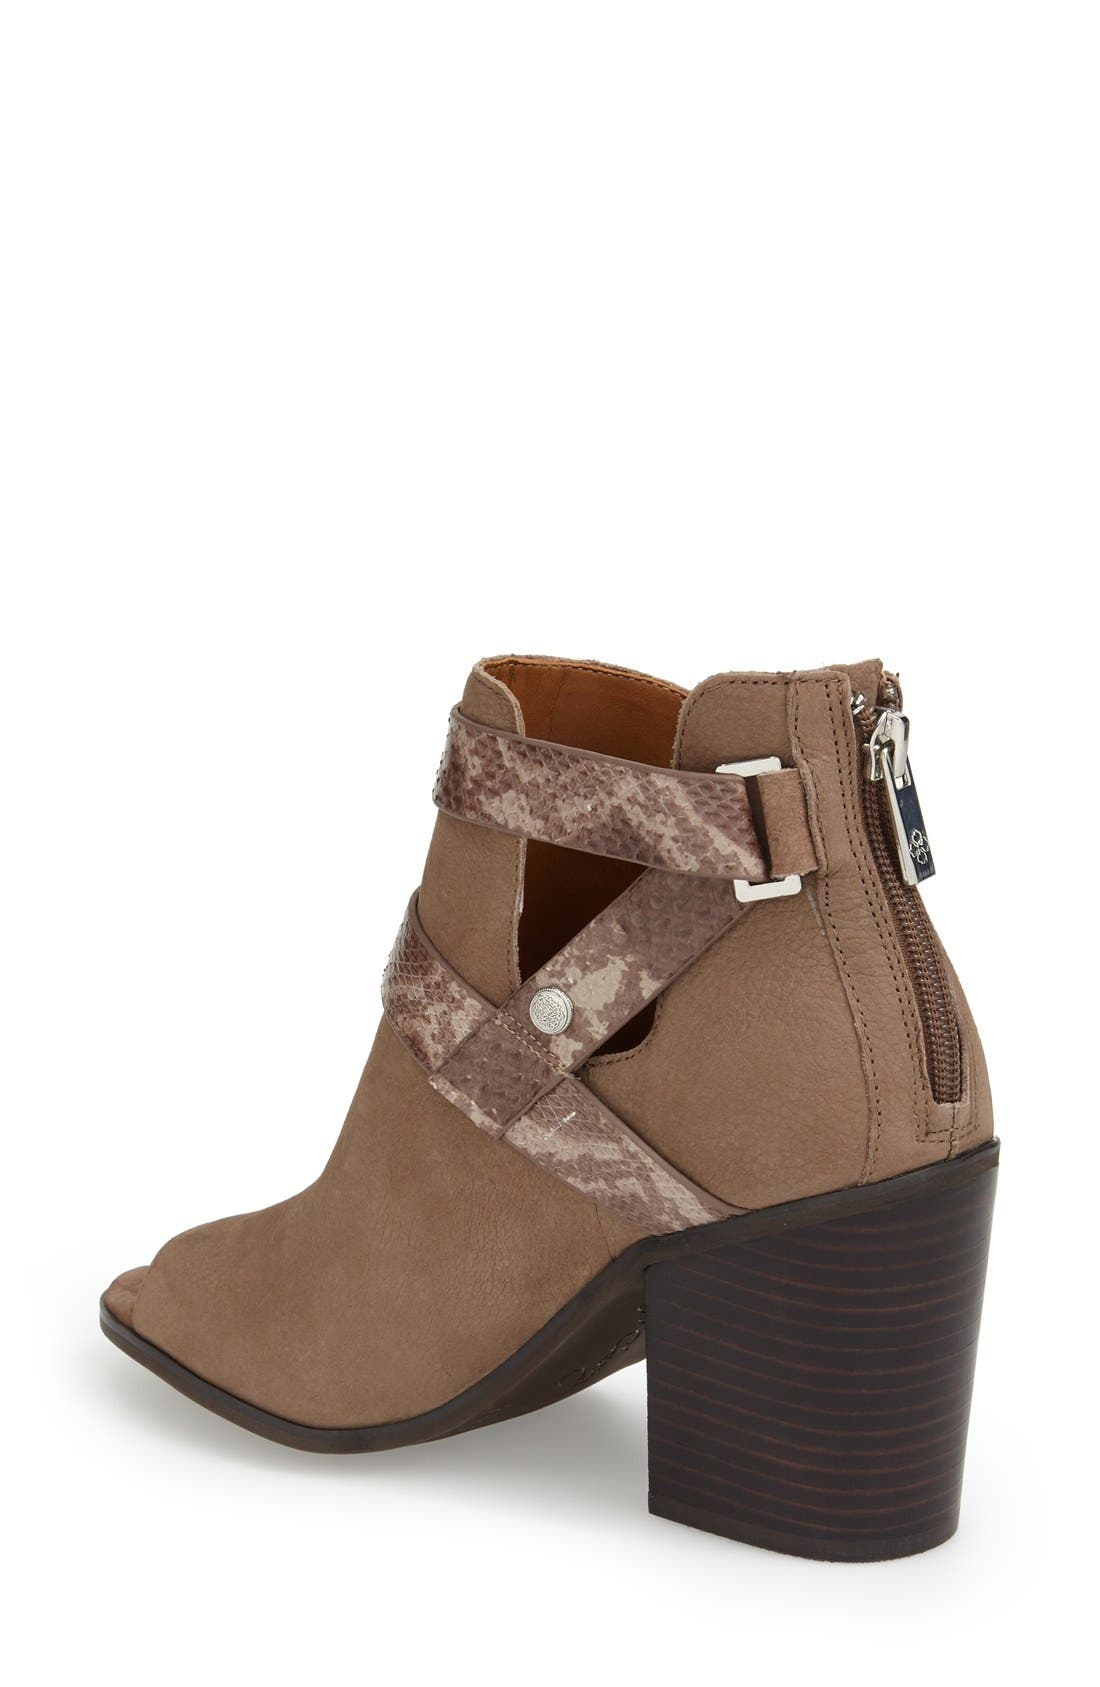 'Caraleigh' Peep Toe Bootie,                             Alternate thumbnail 2, color,                             741